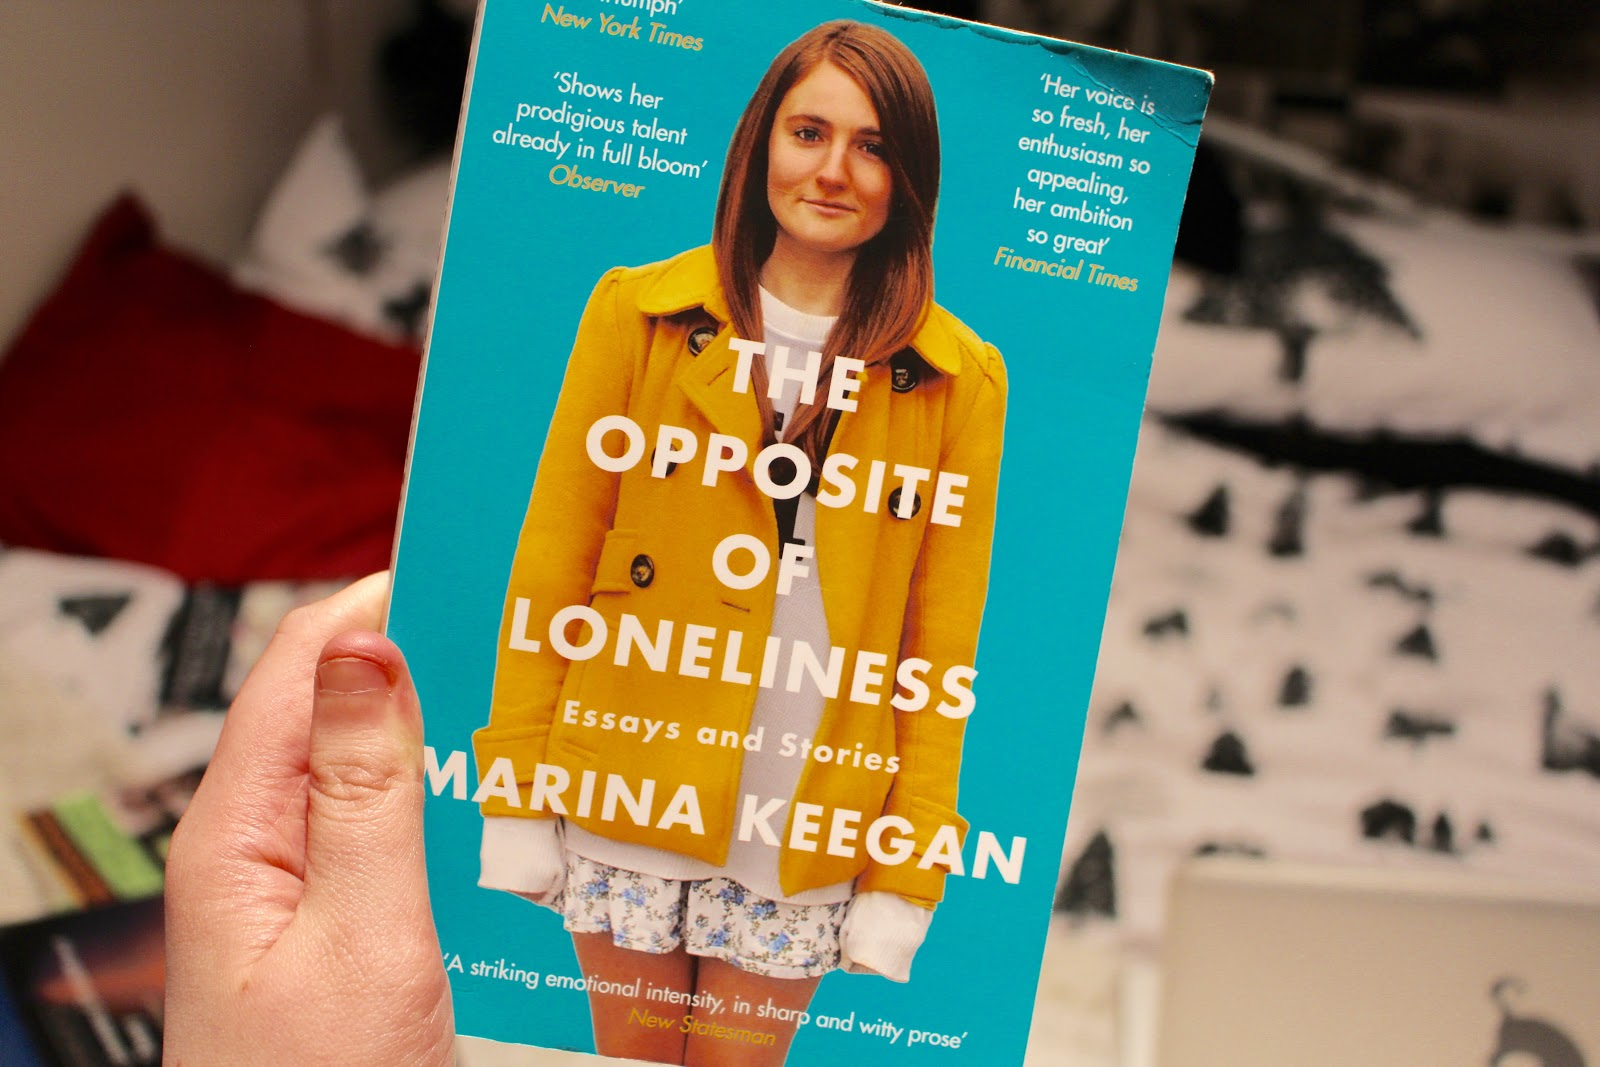 kirstiekins the opposite of loneliness marina keegan a few months ago a friend of mine an essay online called the opposite of loneliness he said it was deeply moving and made him think about his own